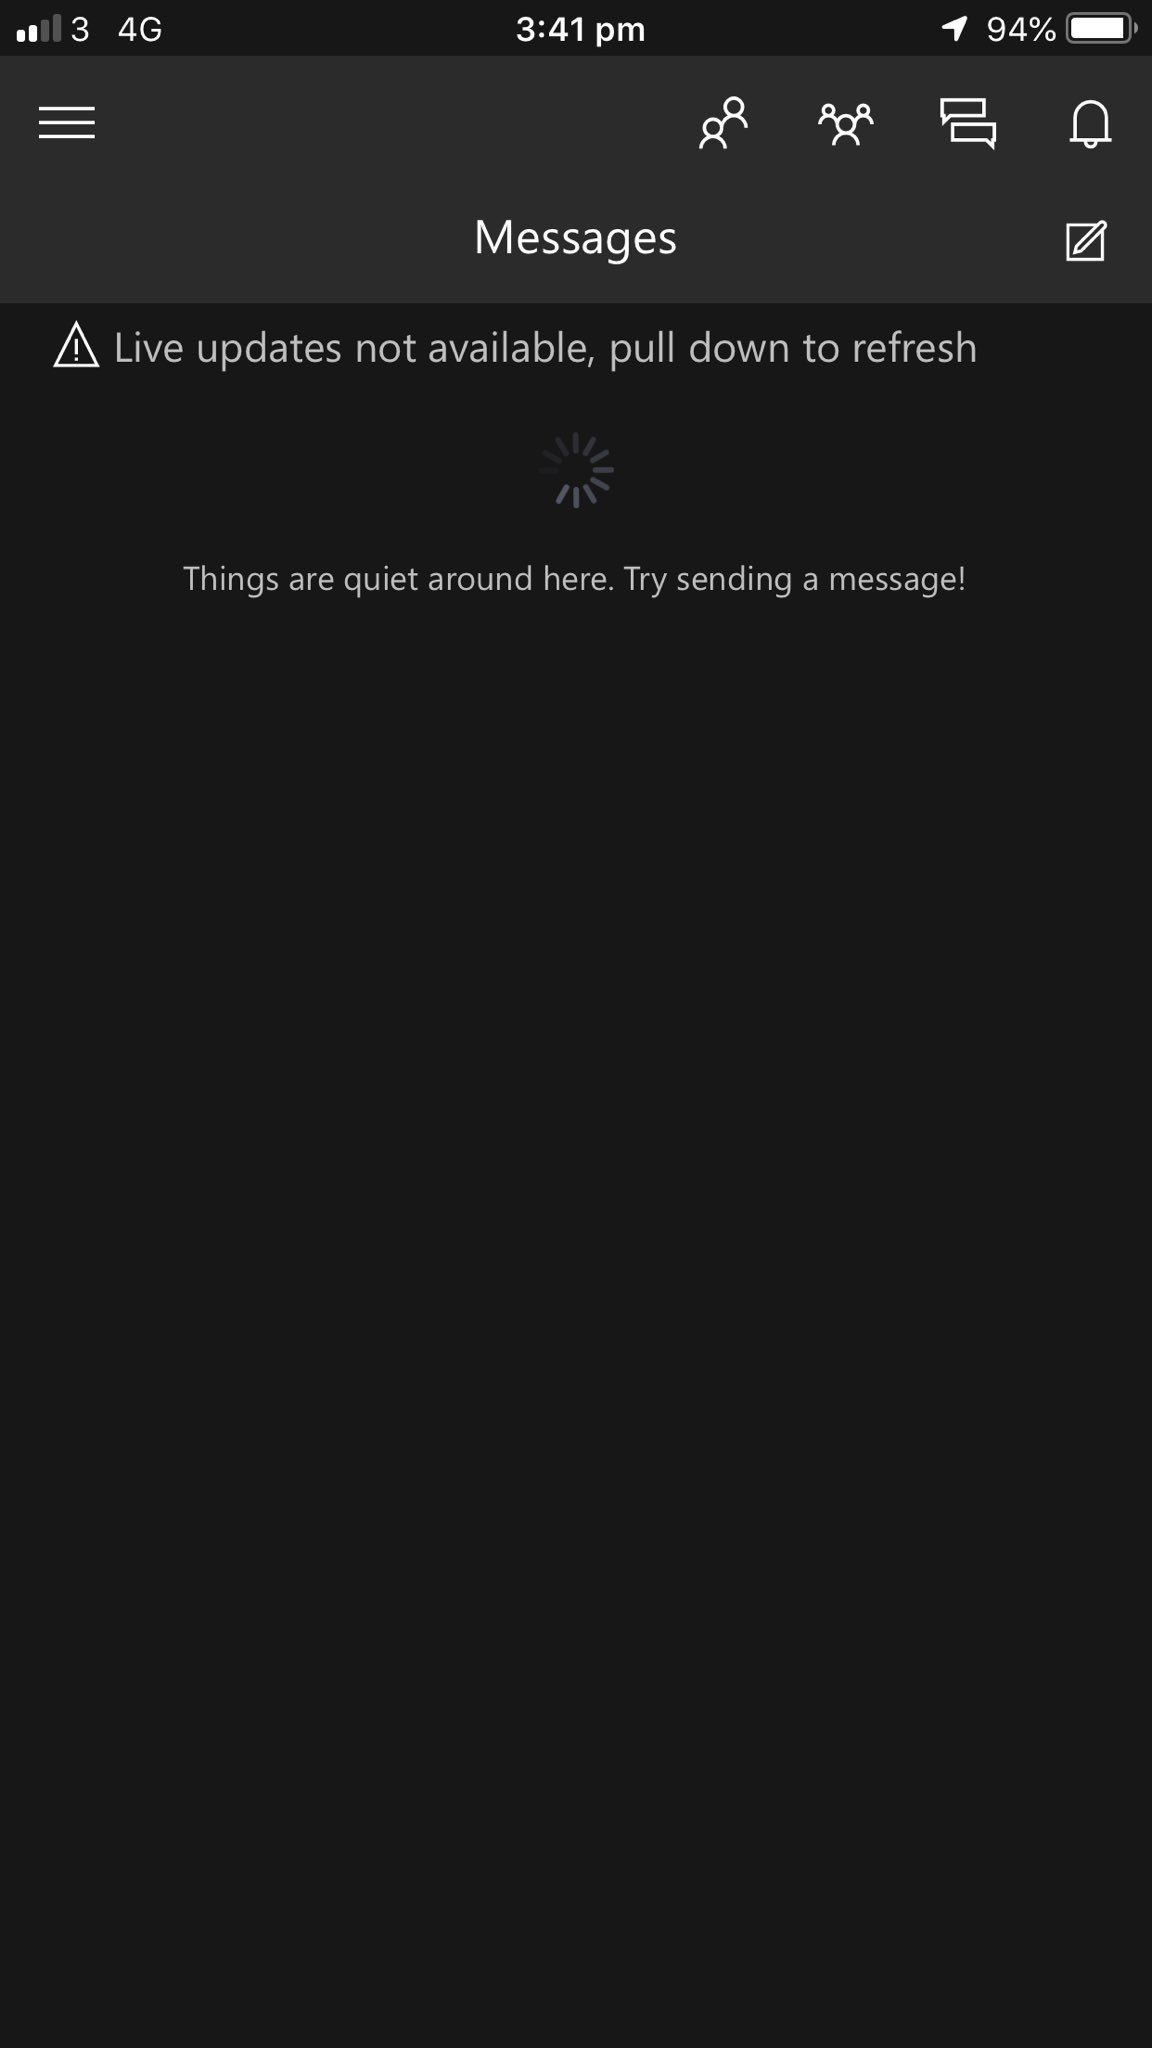 Xbox app on phone - cant see my messages [IMG]